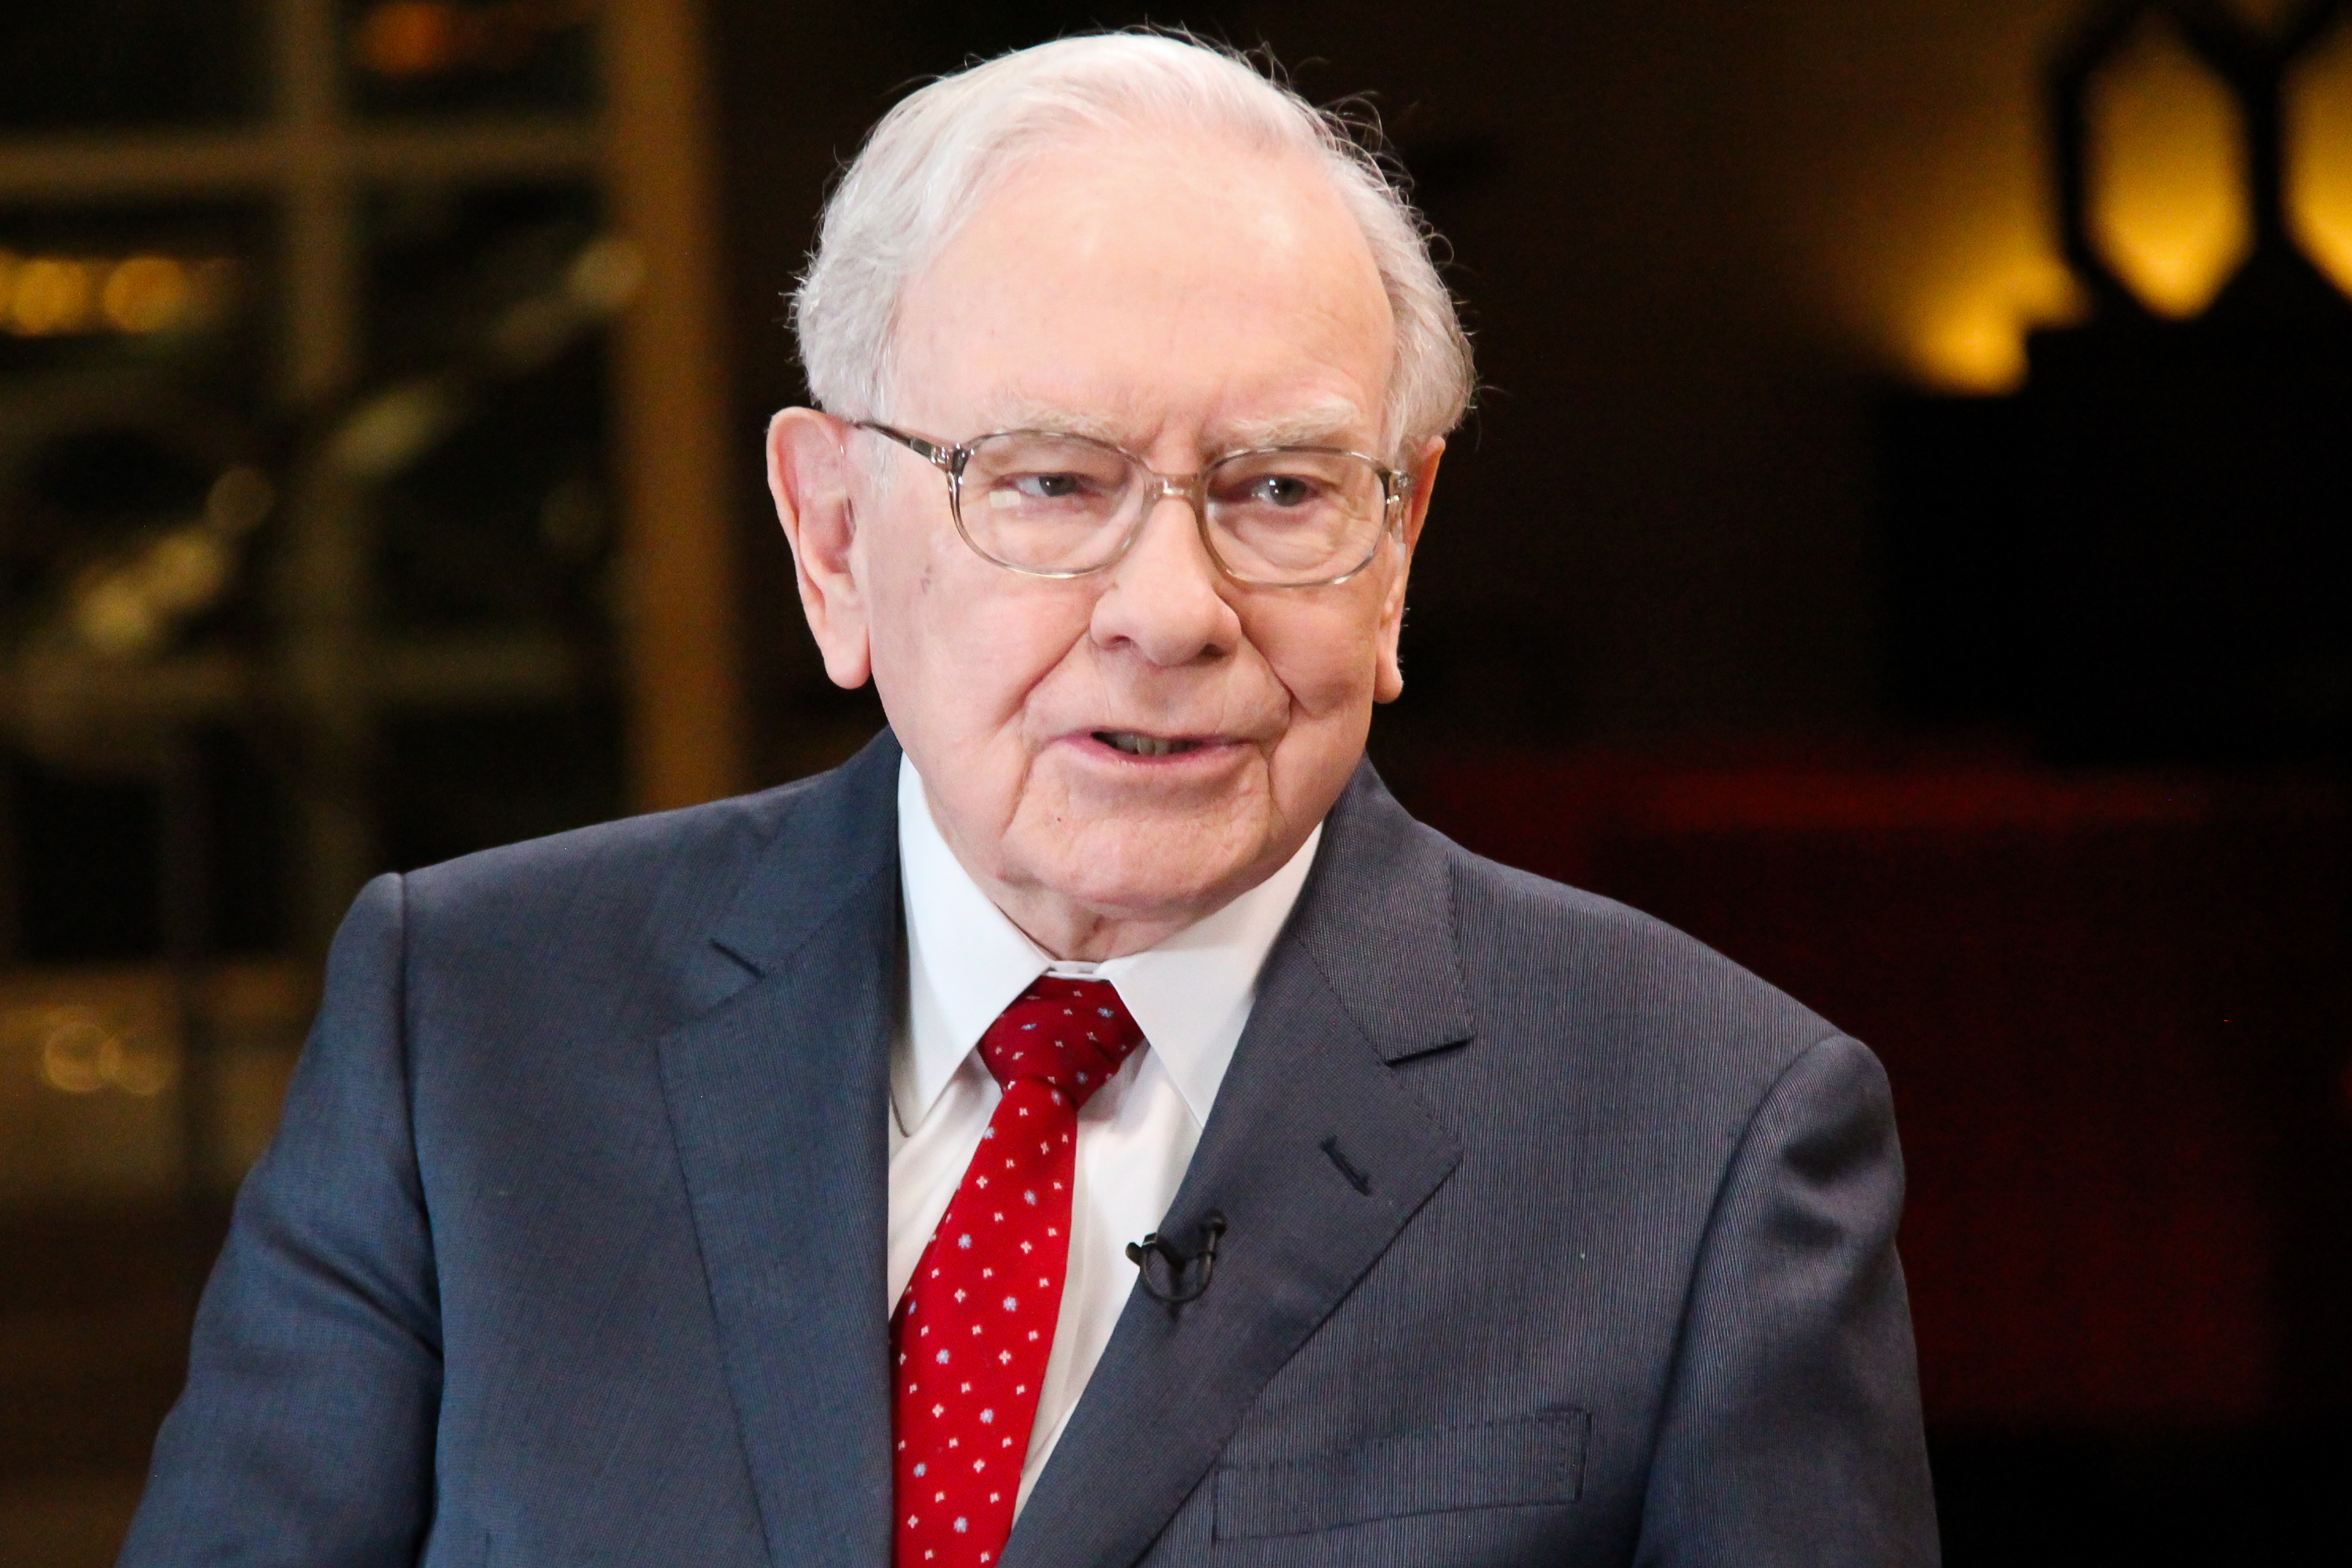 Warren Buffett, chairman and CEO of Berkshire Hathaway, and consistently ranked among the world's wealthiest people, in an interview with Squawk Box on Feb. 29, 2016.